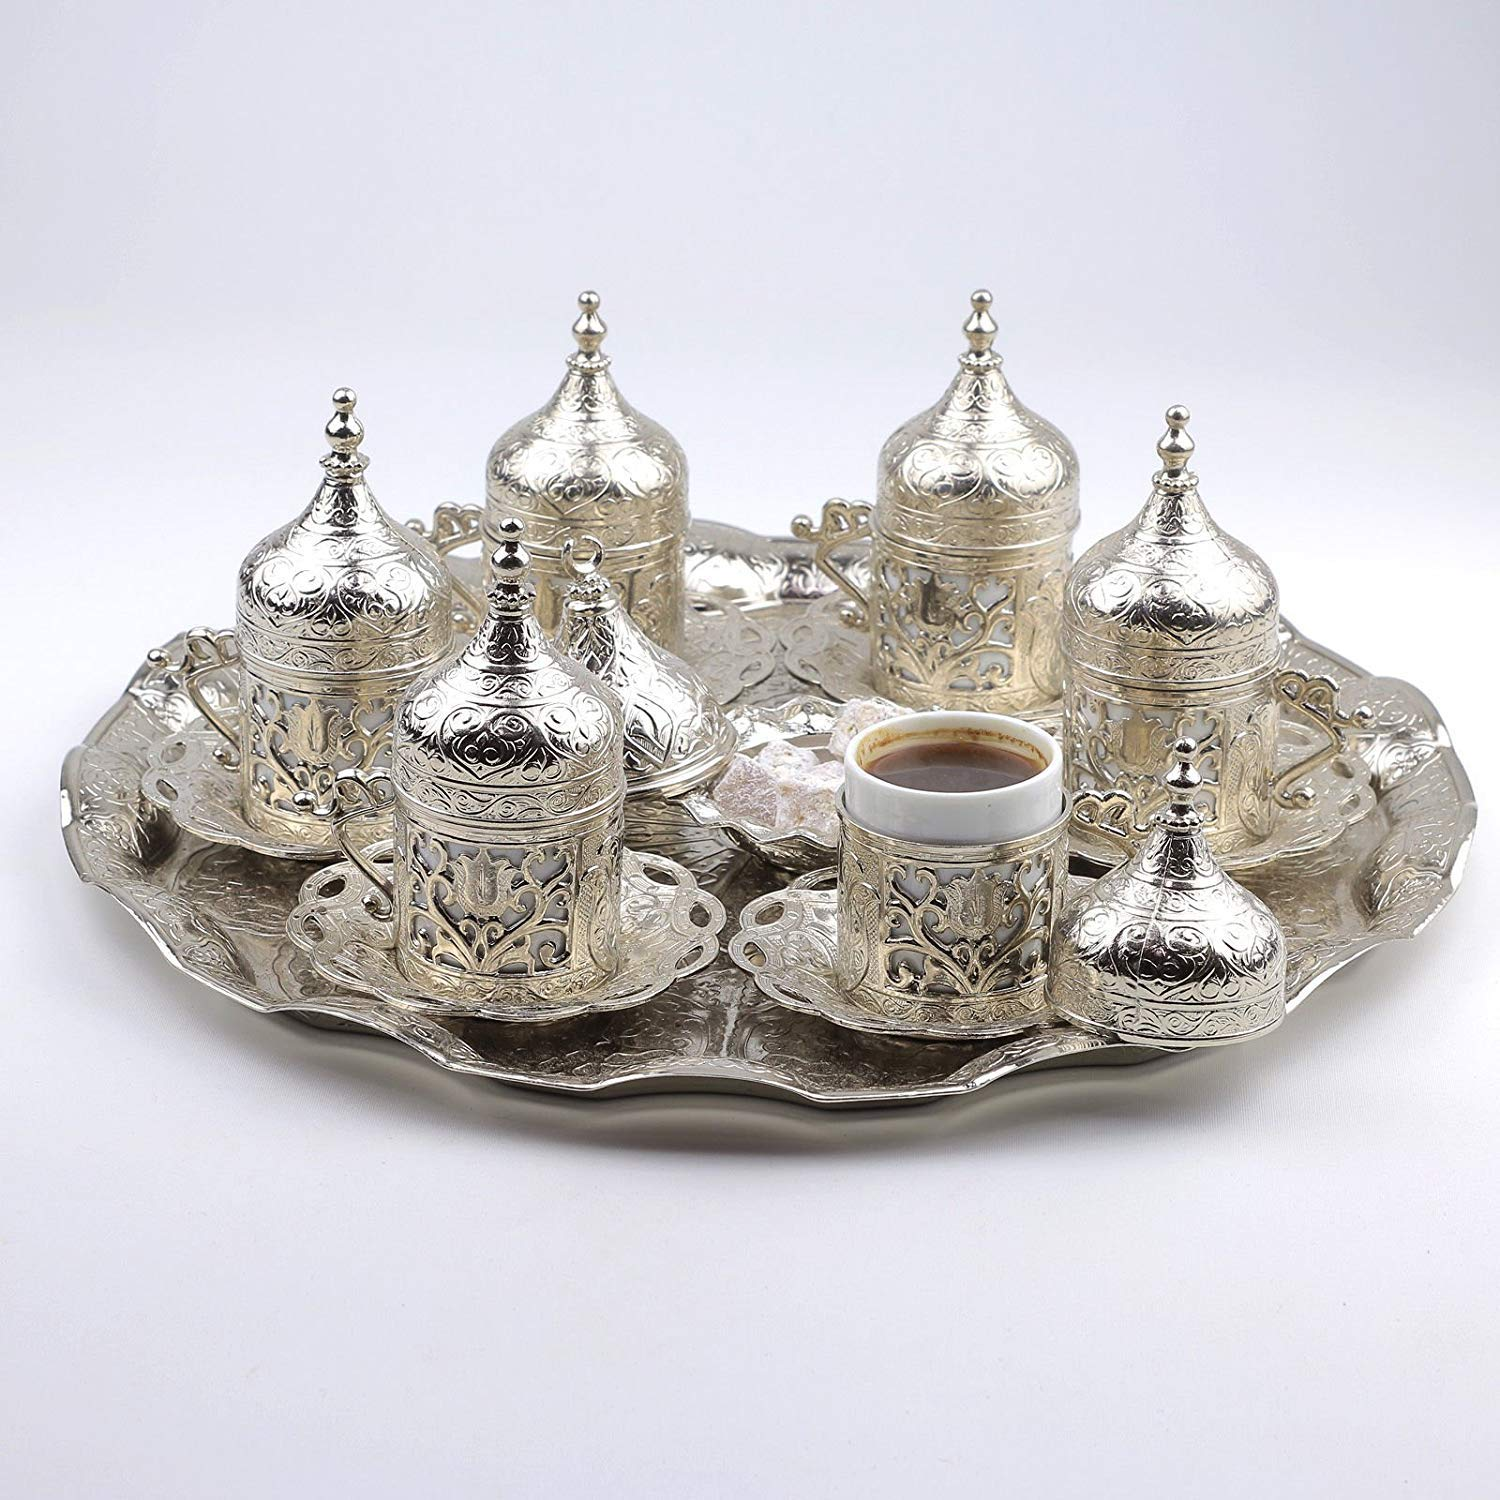 New 27 Pc Ottoman Turkish Greek Arabic Coffee Espreso Serving Cup Saucer Silver (Kubbeli) Alisveristime 98072-11